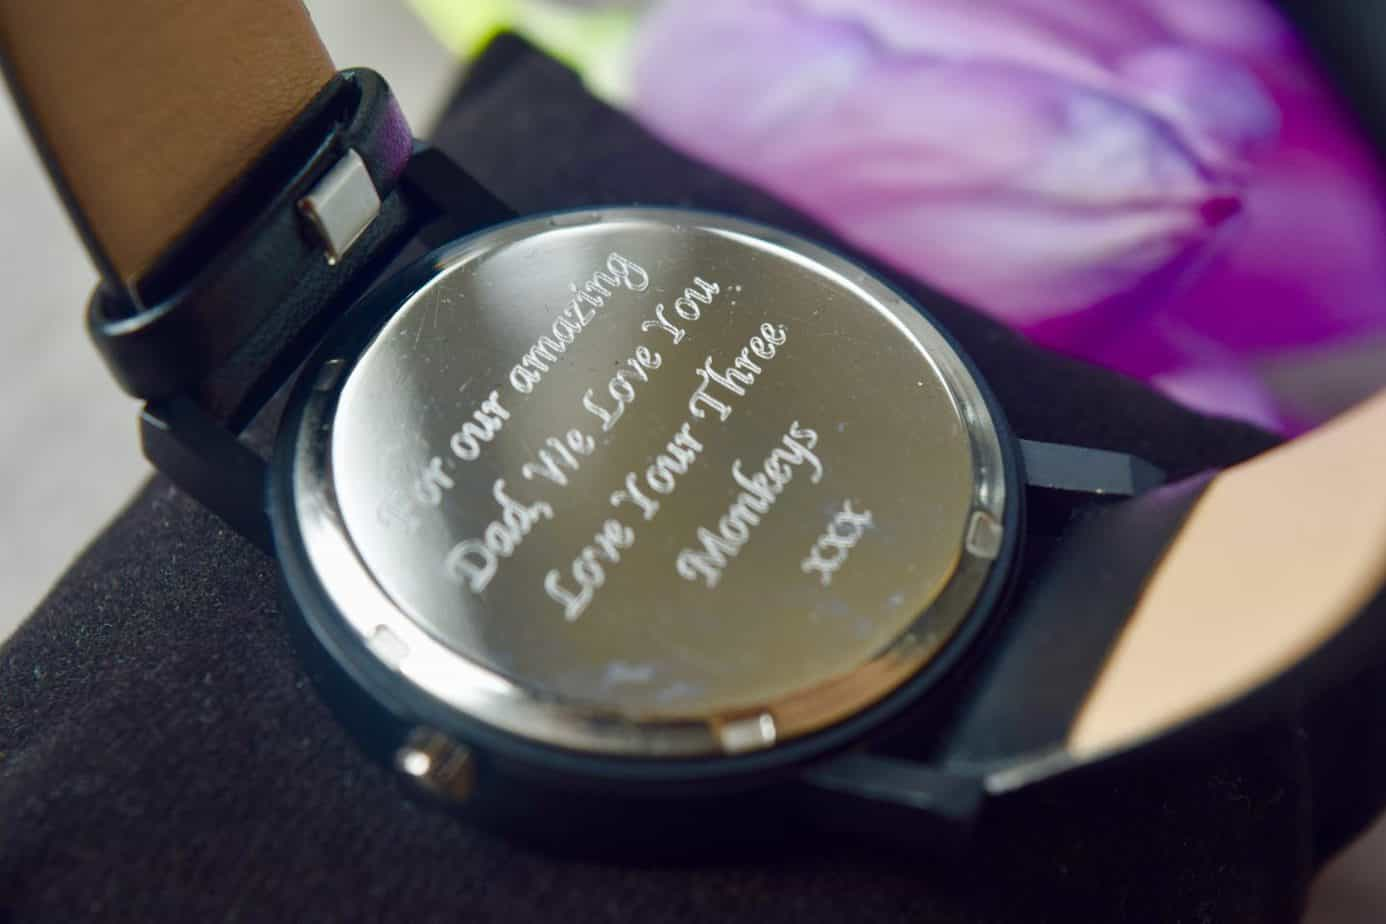 Personalised Father's Day message on the handless personalised watch